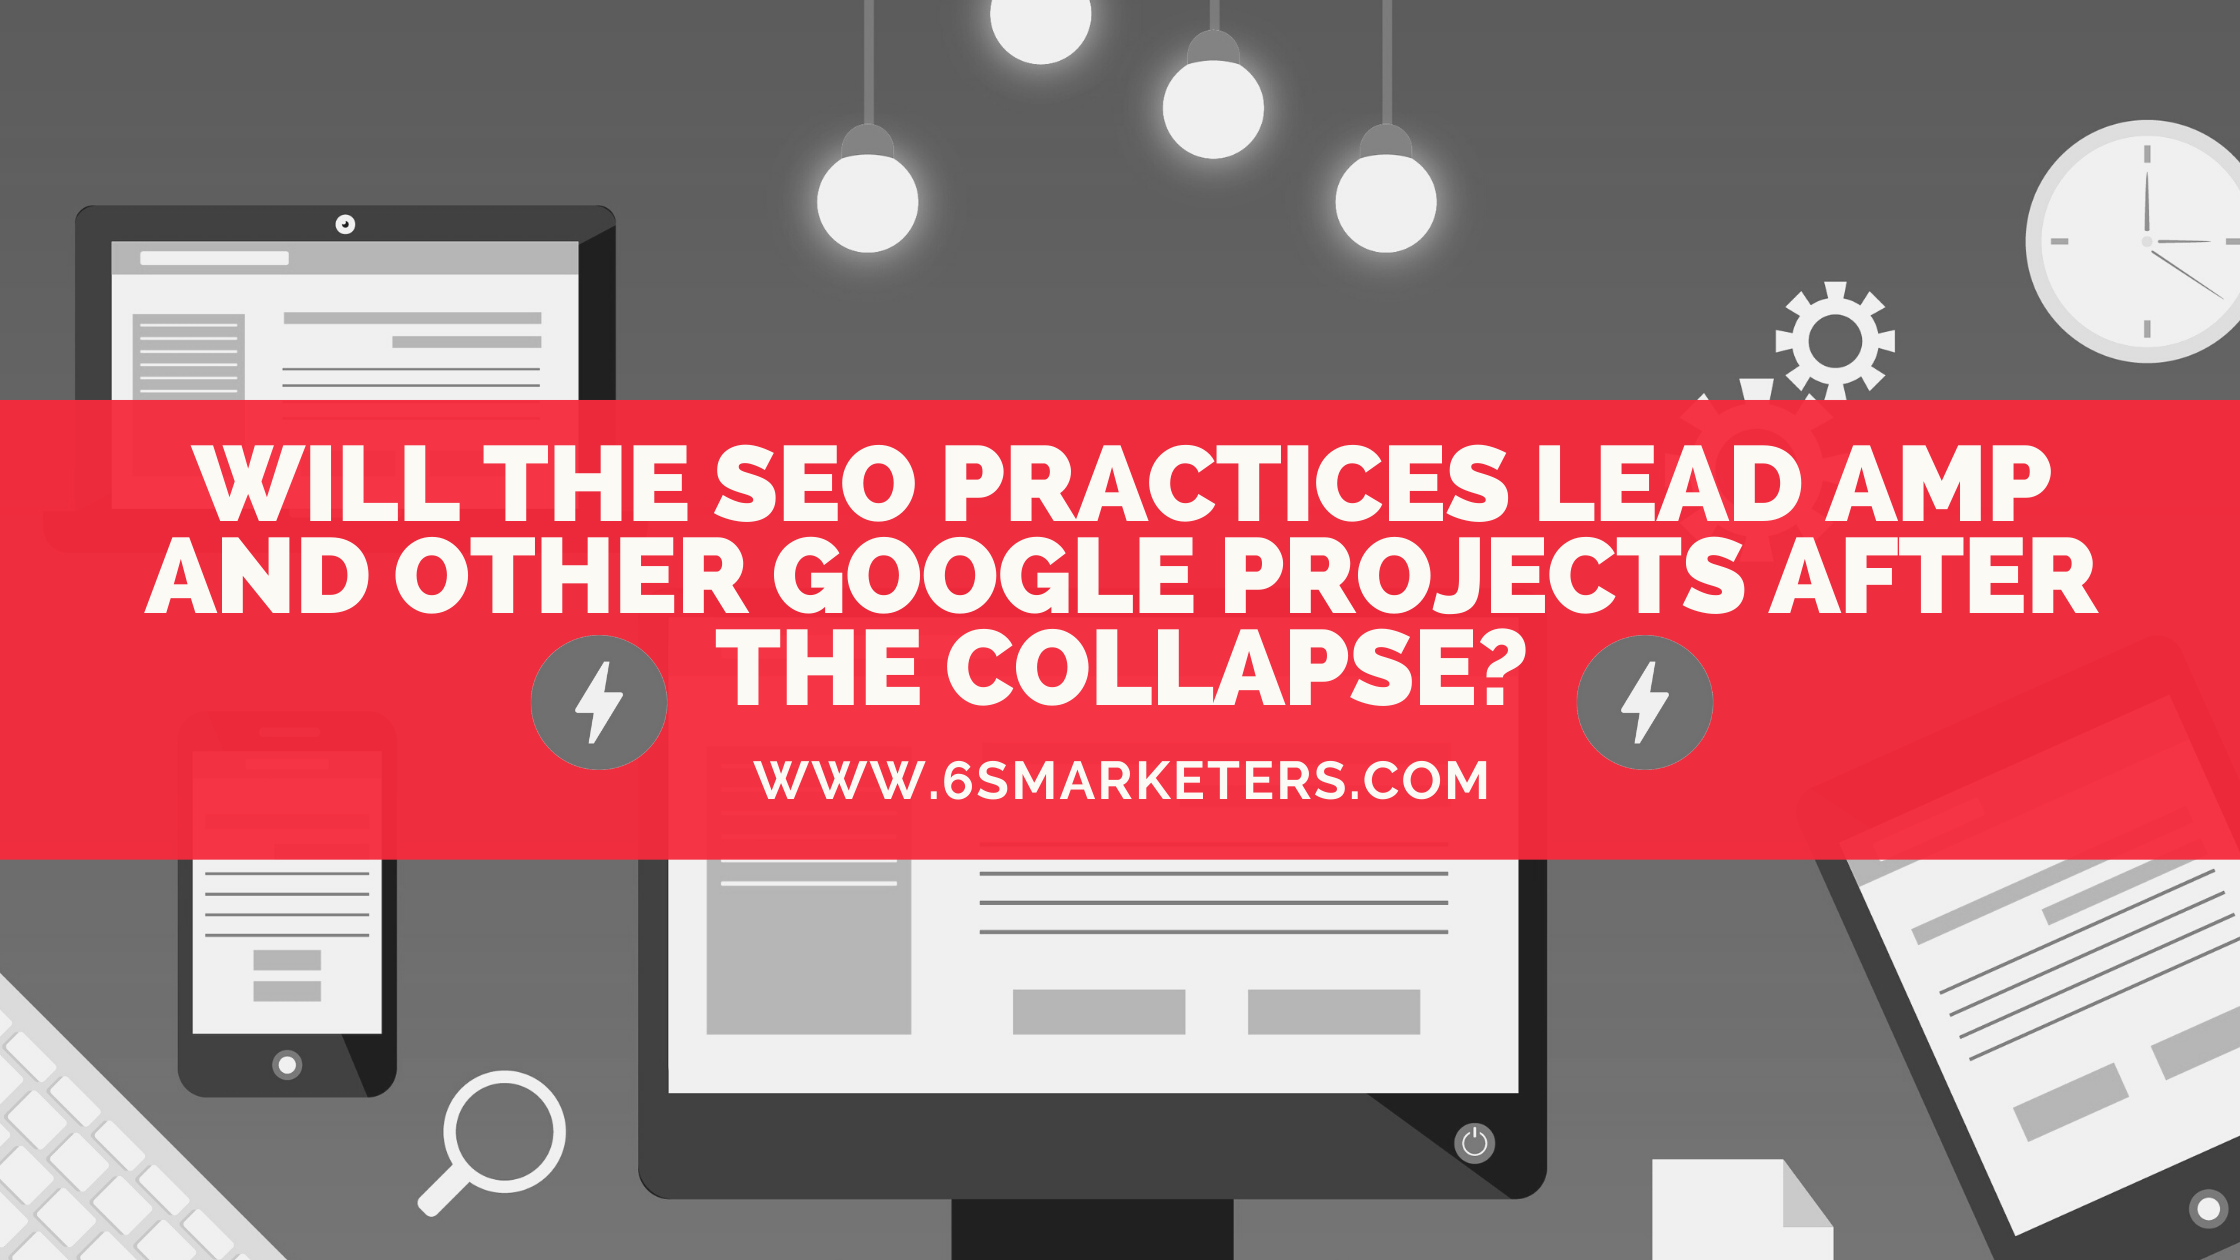 Will the SEO practices lead AMP and other Google projects after the collapse_